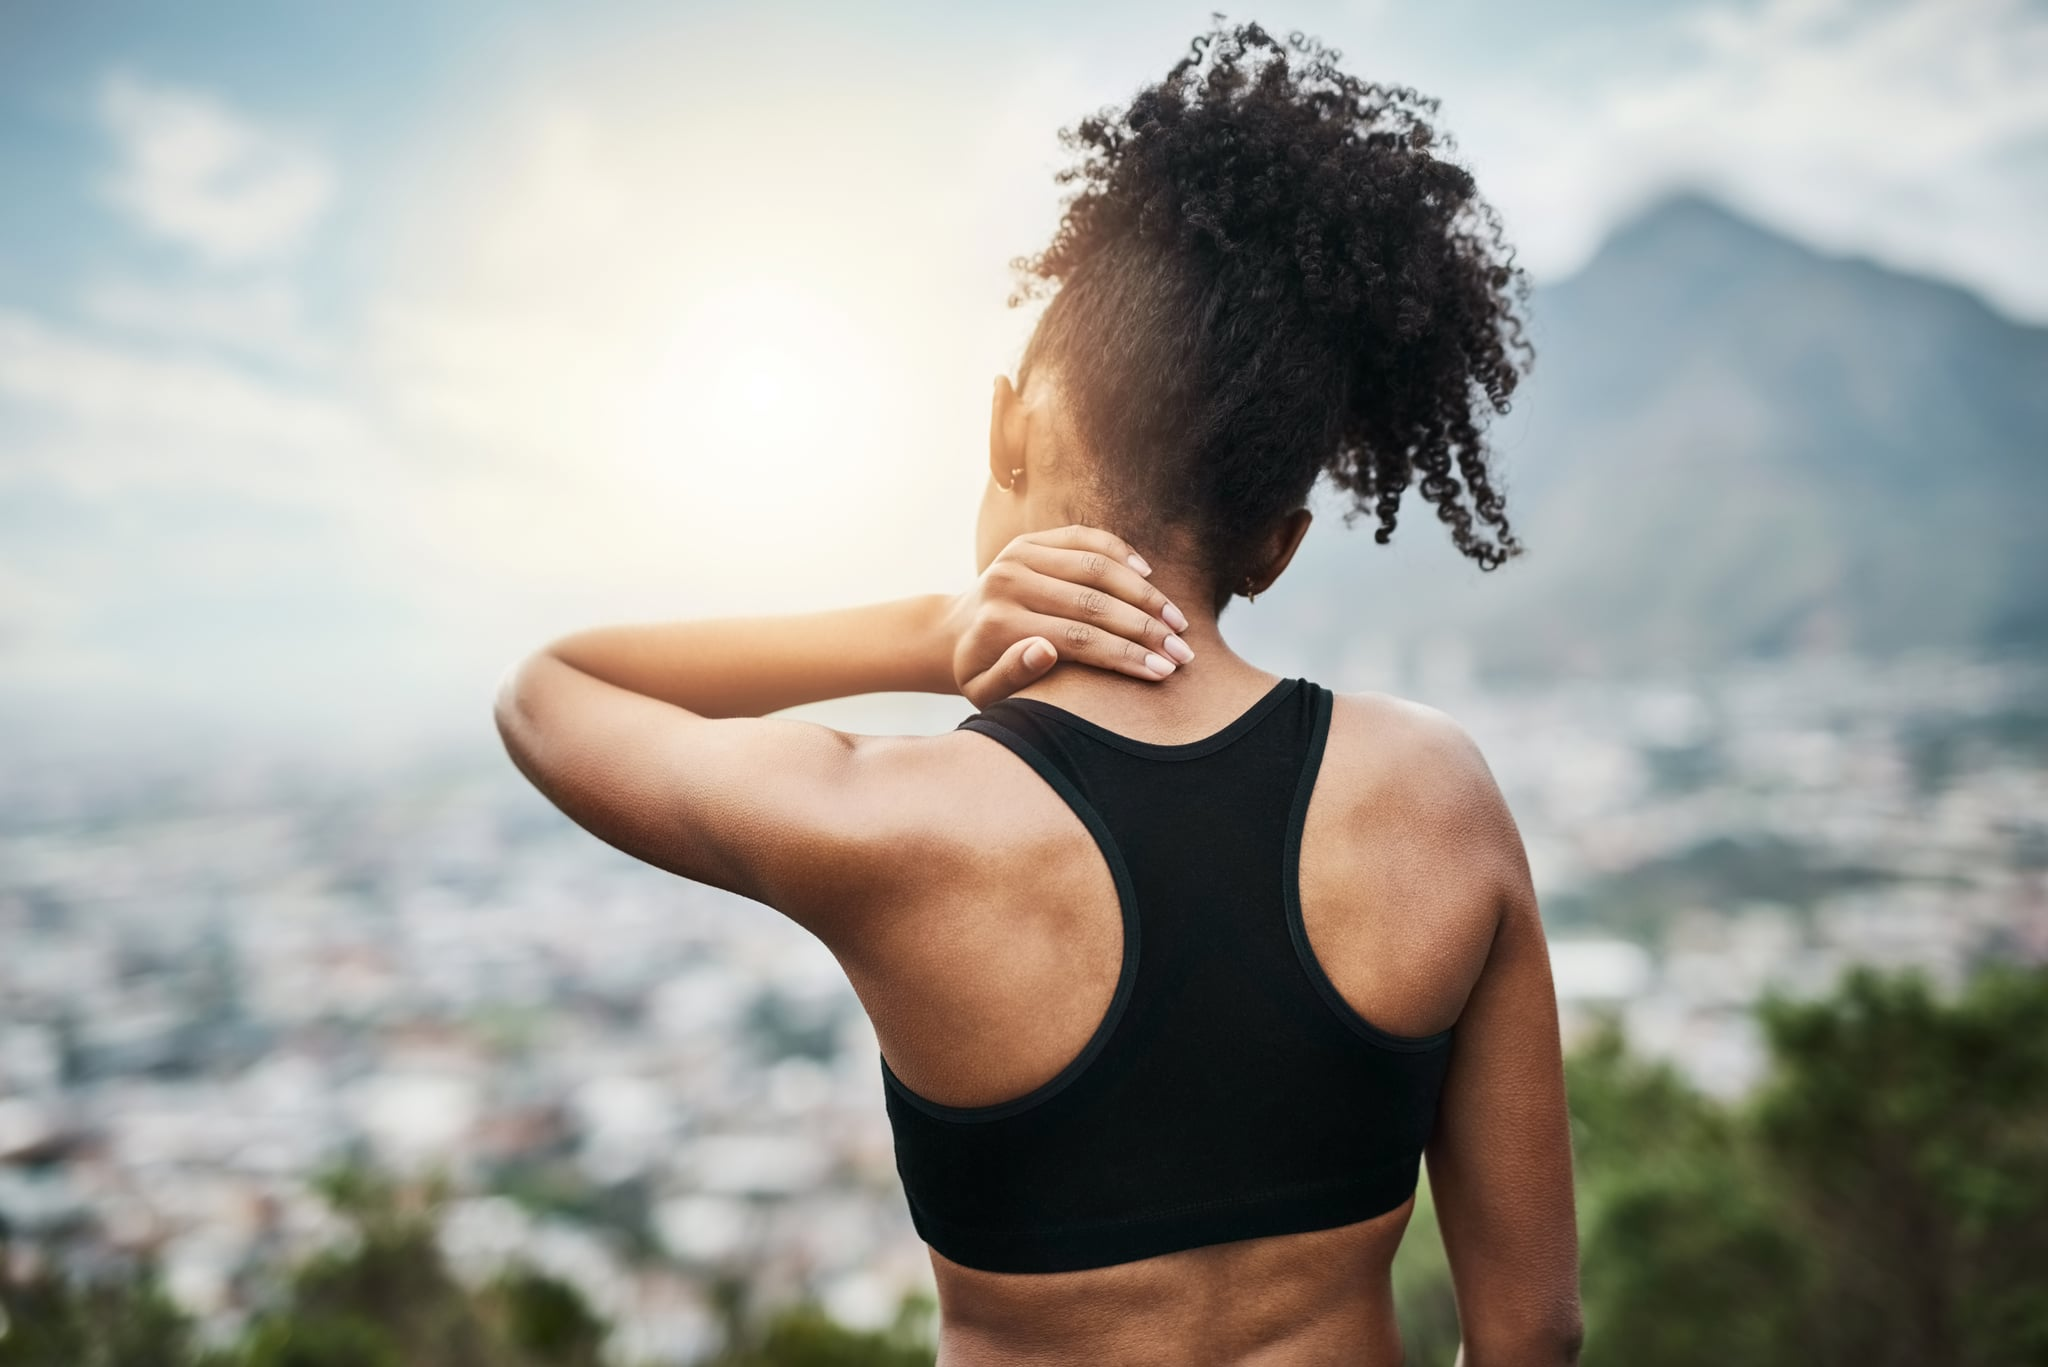 Rearview shot of a sporty young woman holding her neck while exercising outdoors